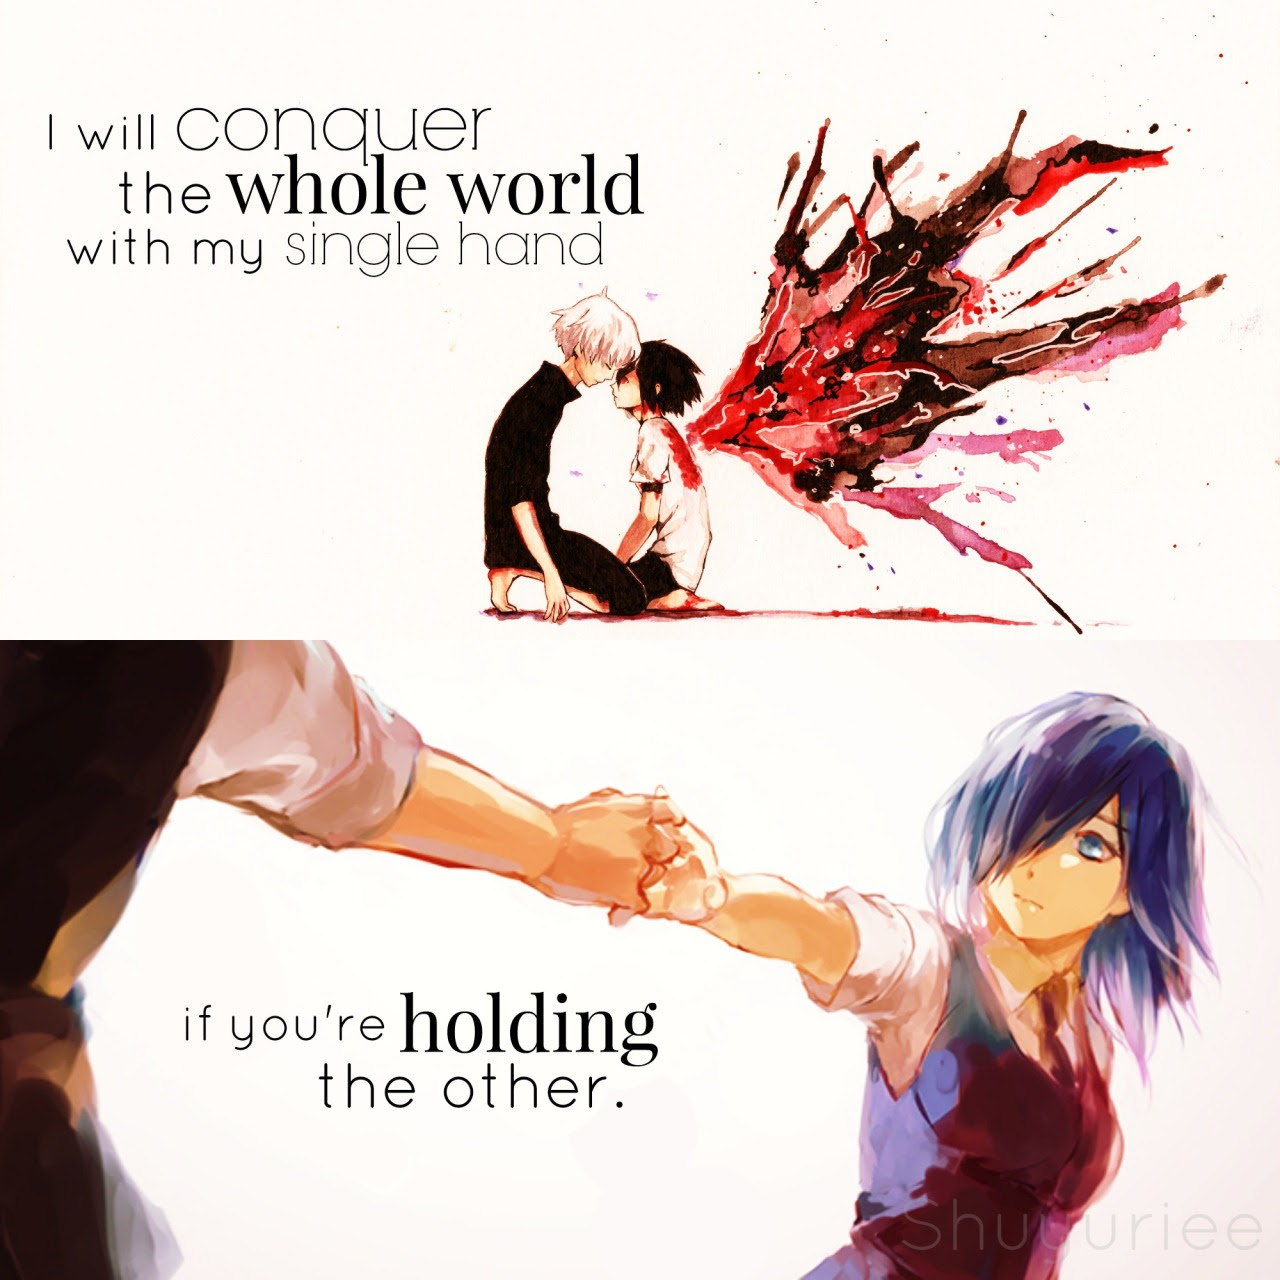 13 Anime Love Quotes To Get Your Day Started OtakuKart Page 4 Source · Apr 02 17 at 9 40pm